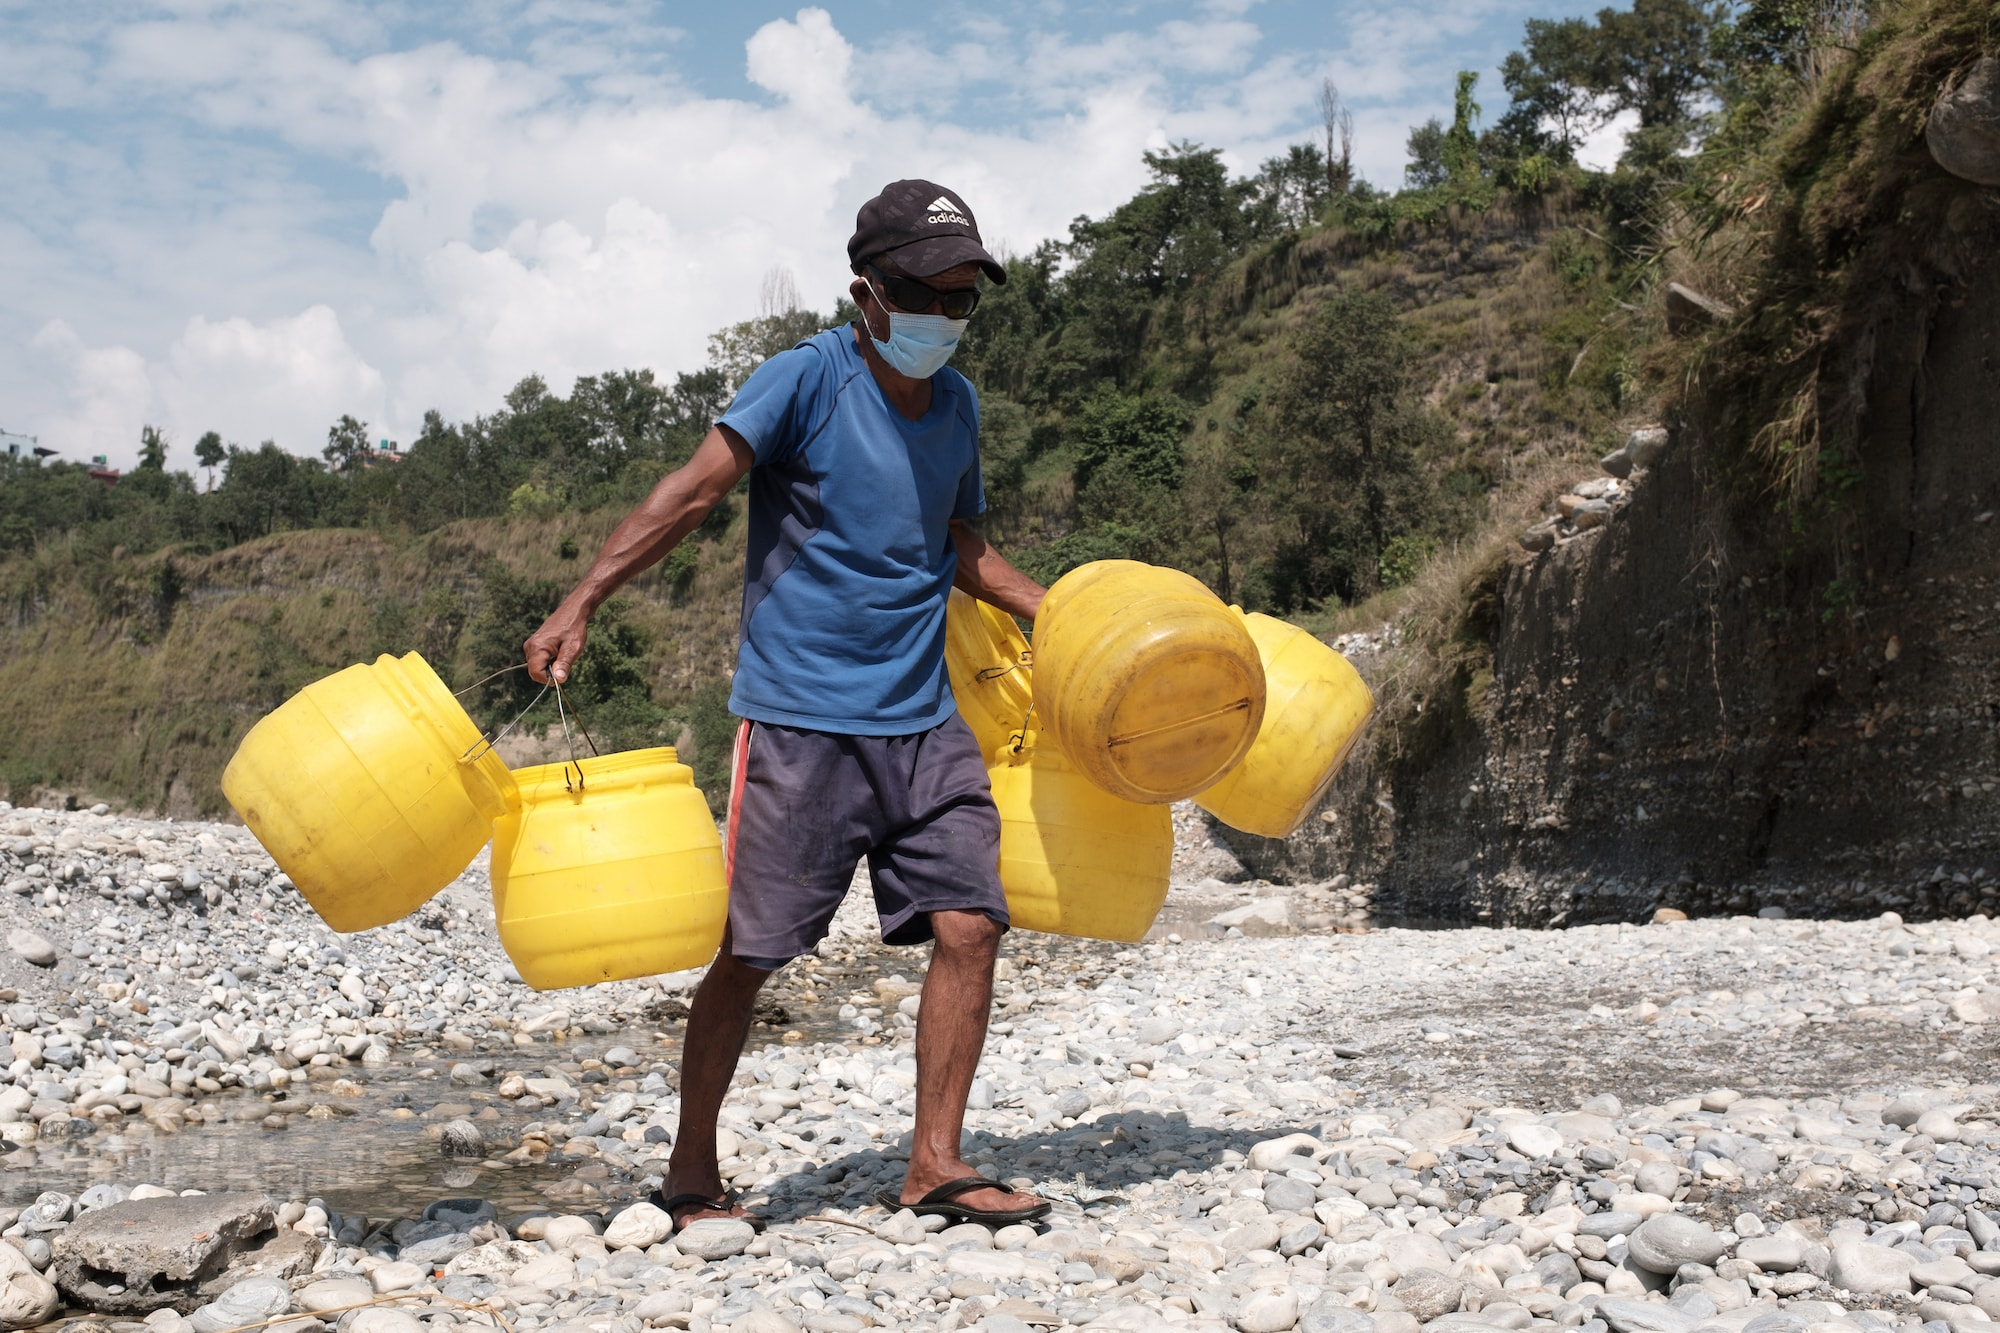 A man walking away with water buckets after washing them by riverside. Pokhara, Nepal